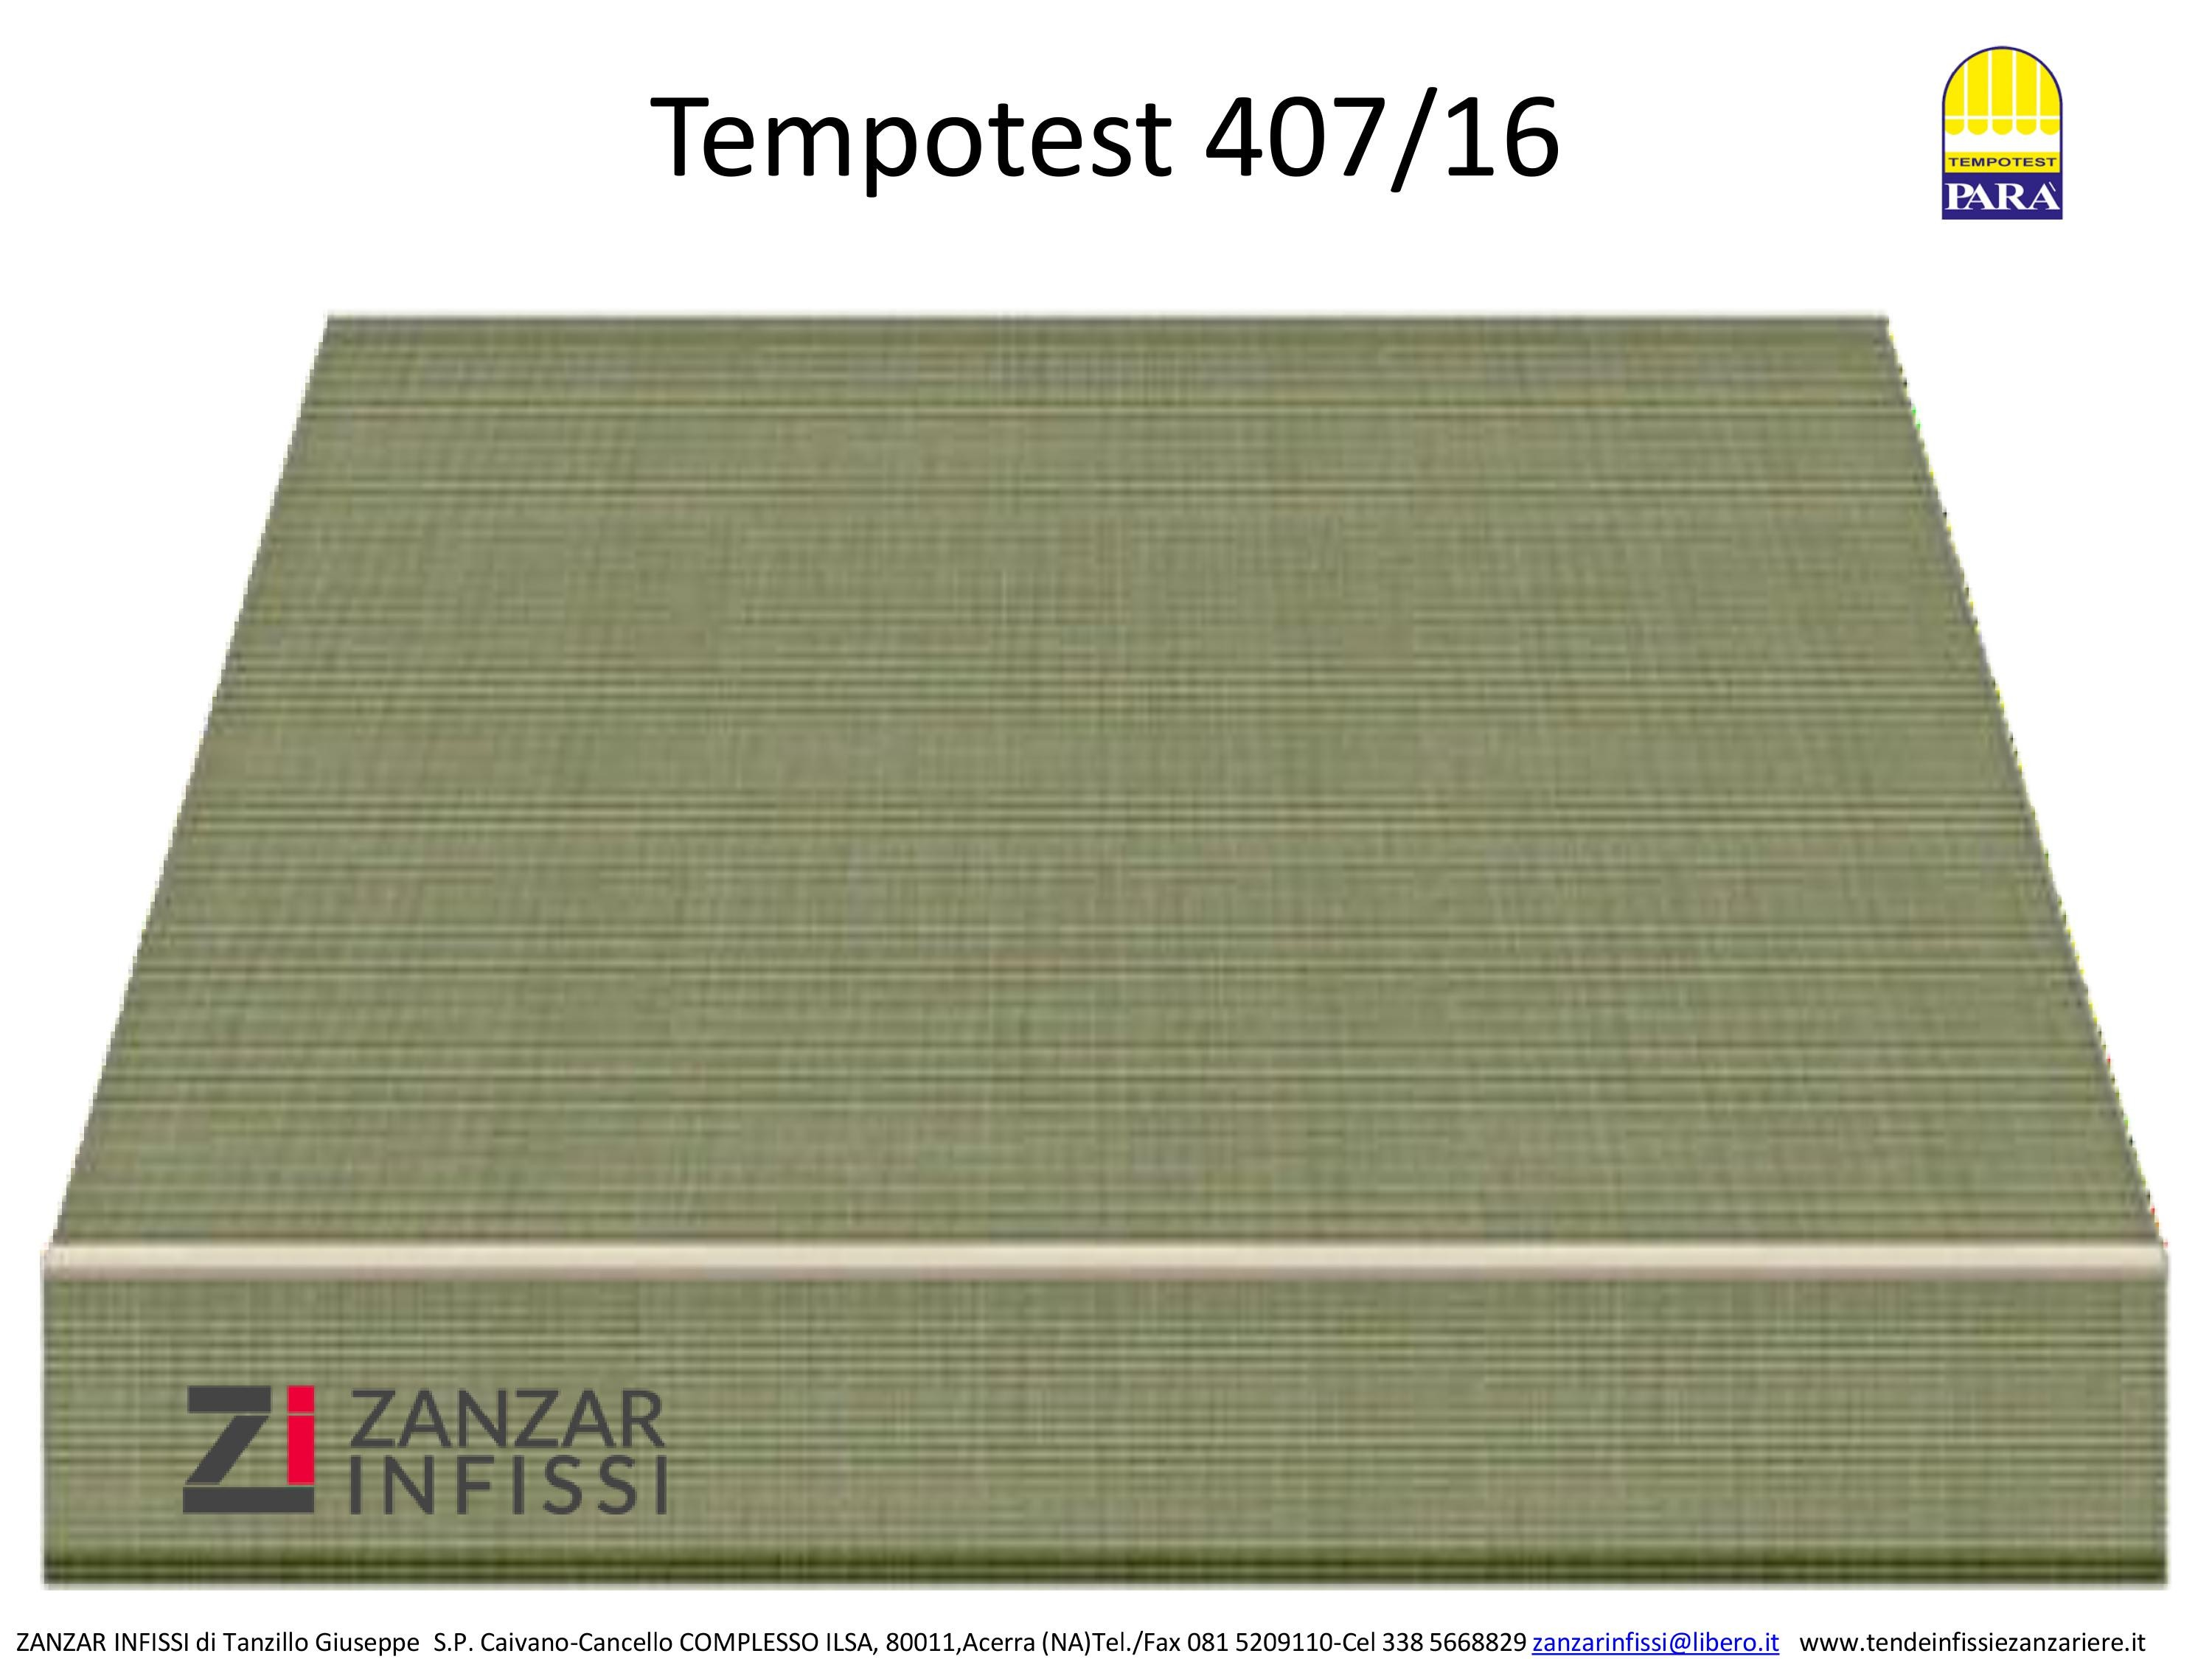 Tempotest 407/16